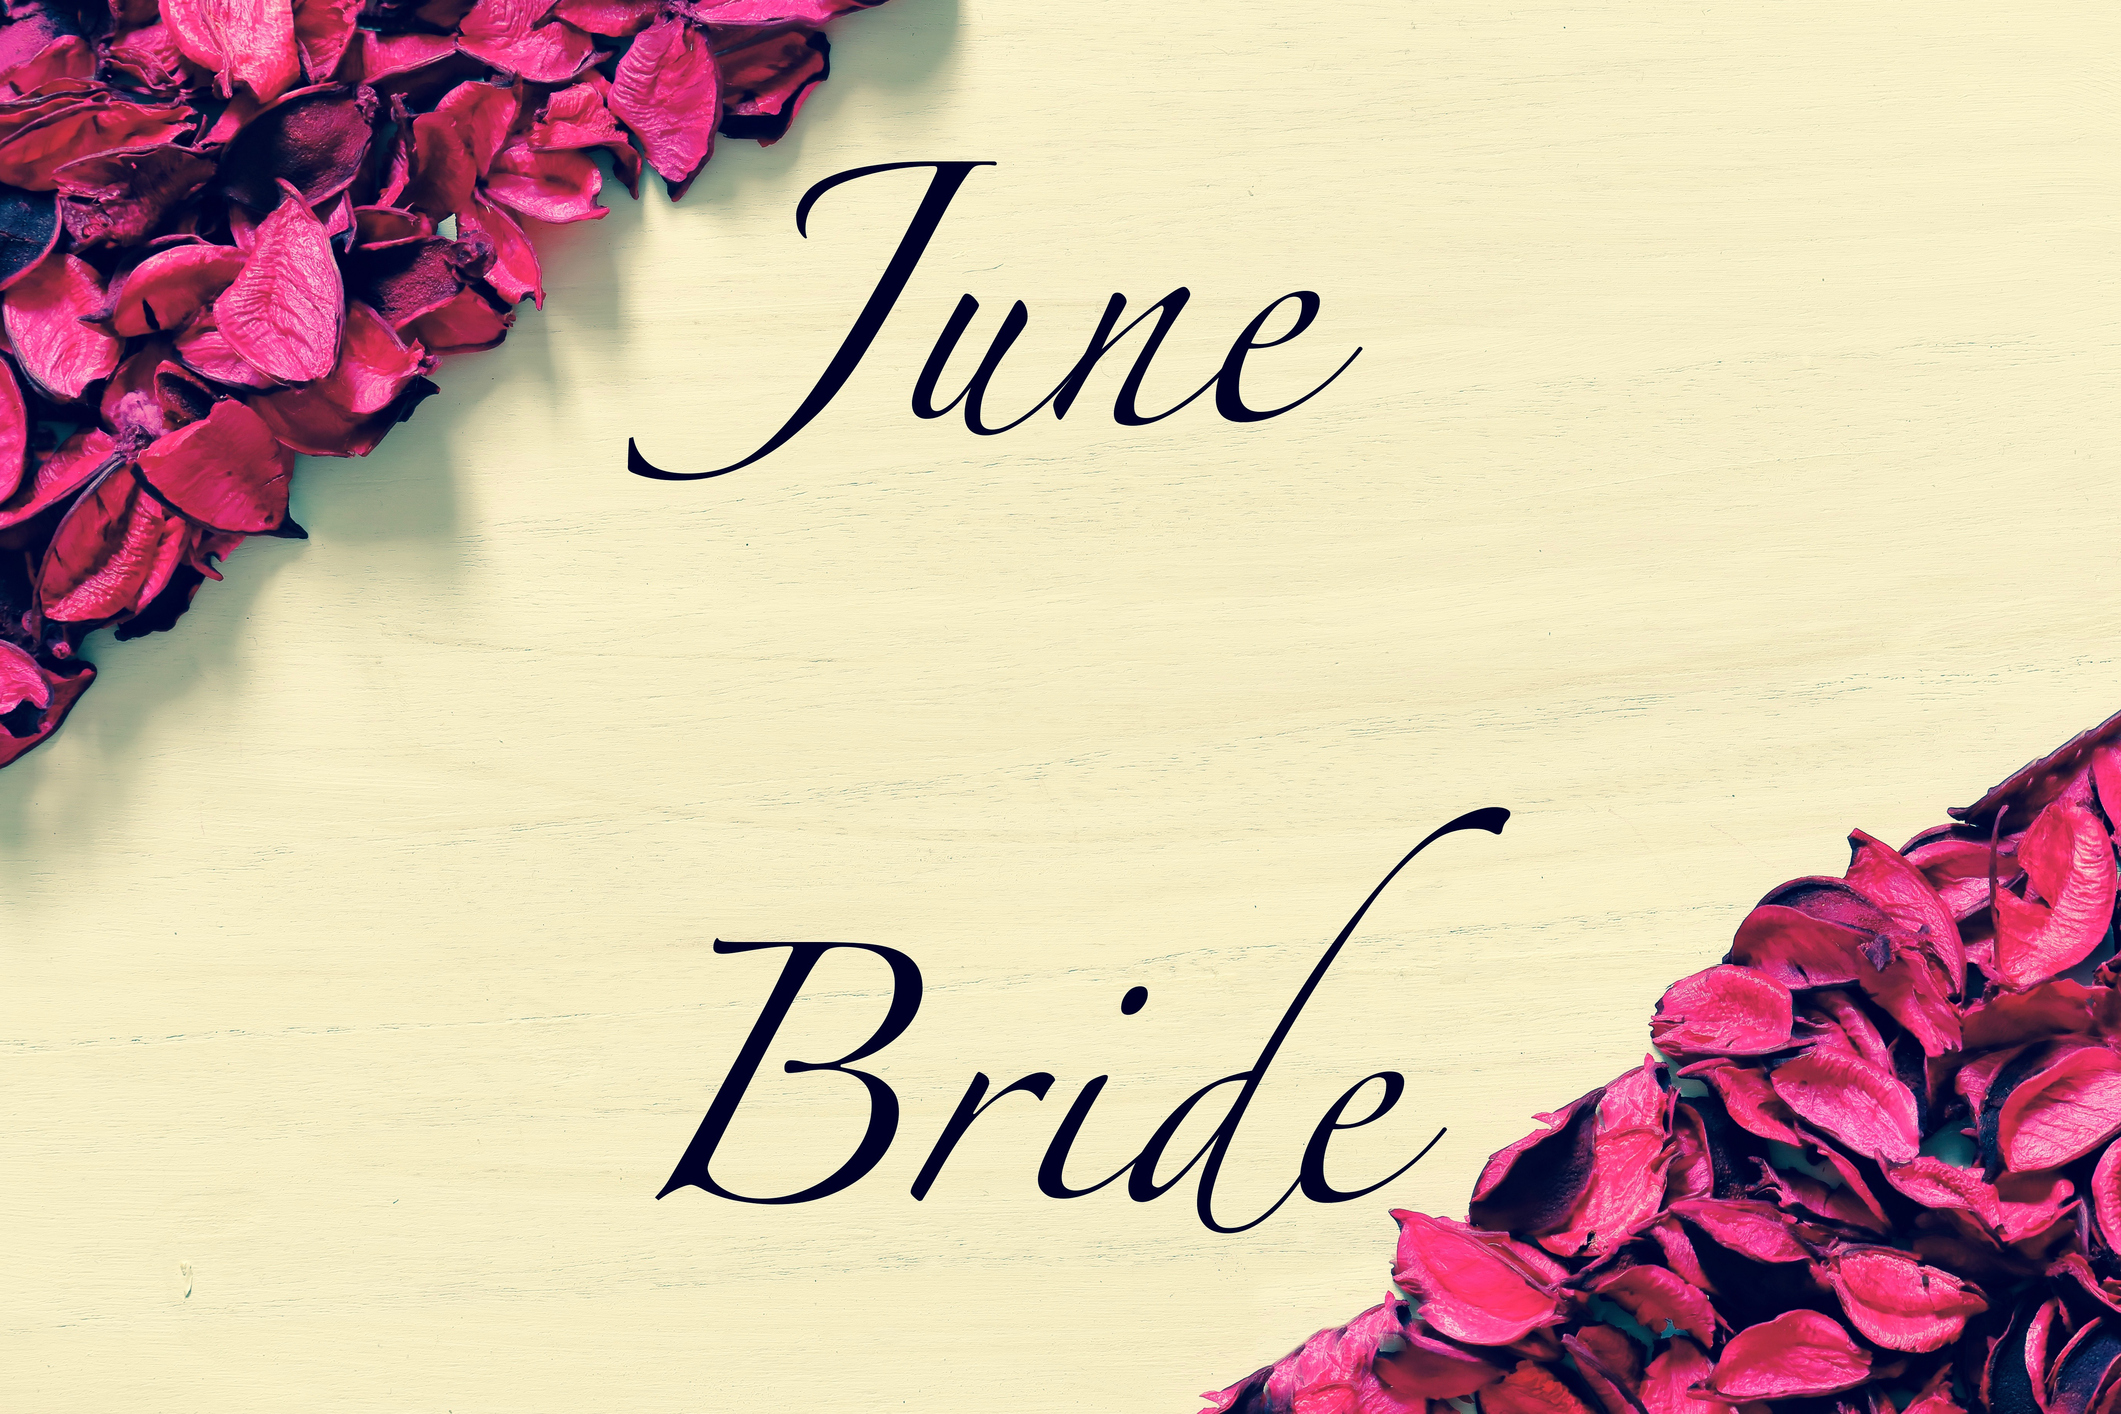 June bride floral decoration